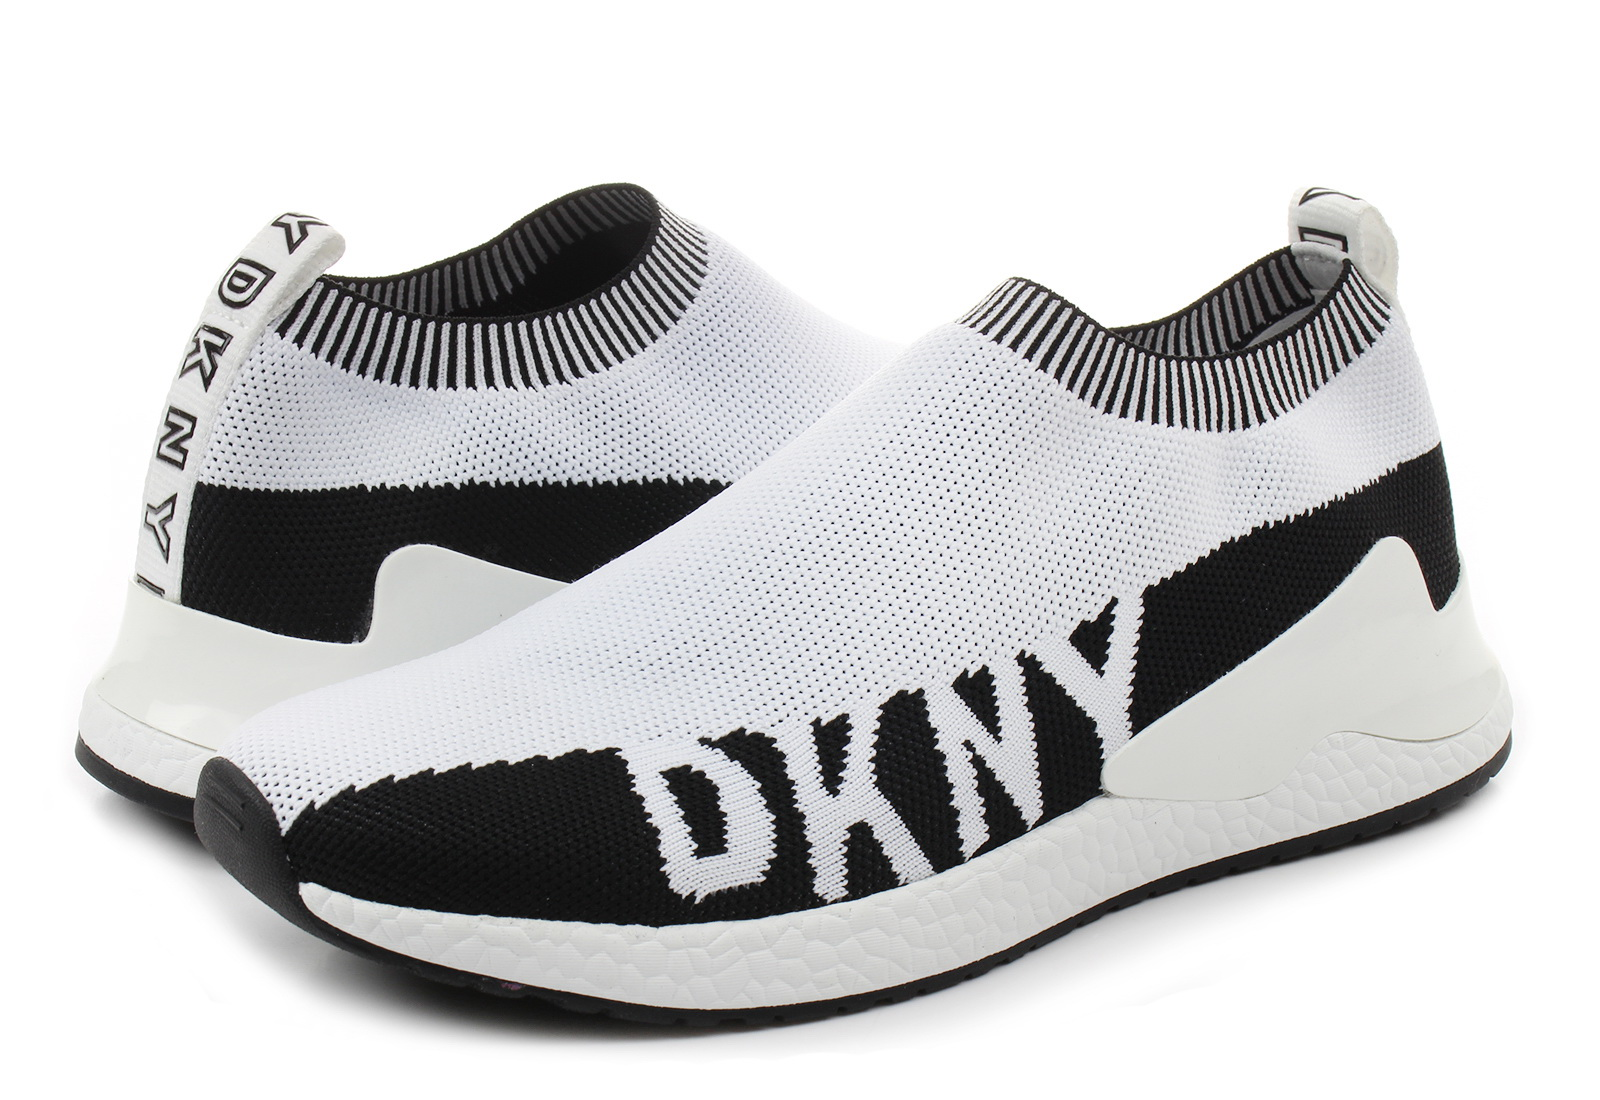 84b6da217 DKNY Shoes - Rini - K1916808-whb - Online shop for sneakers, shoes ...